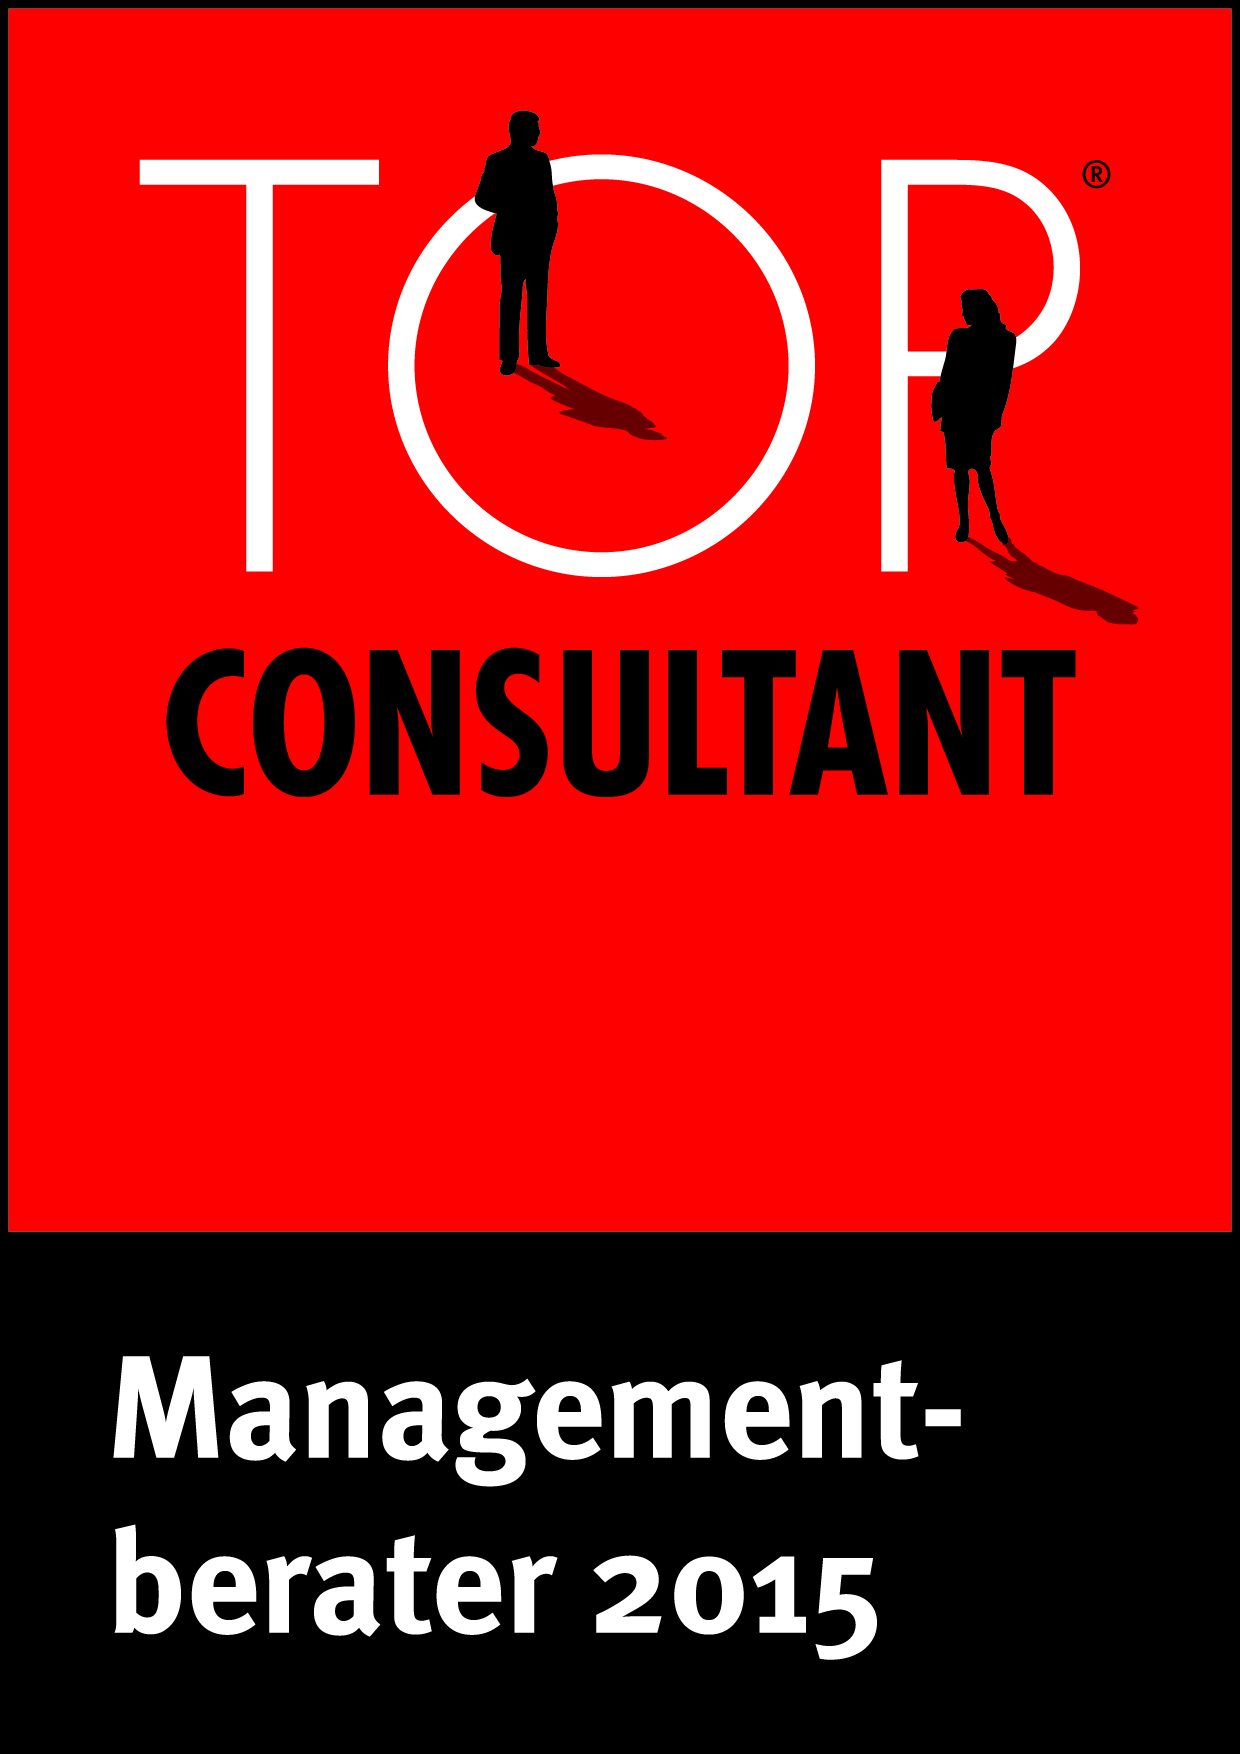 KFT Top Consultant